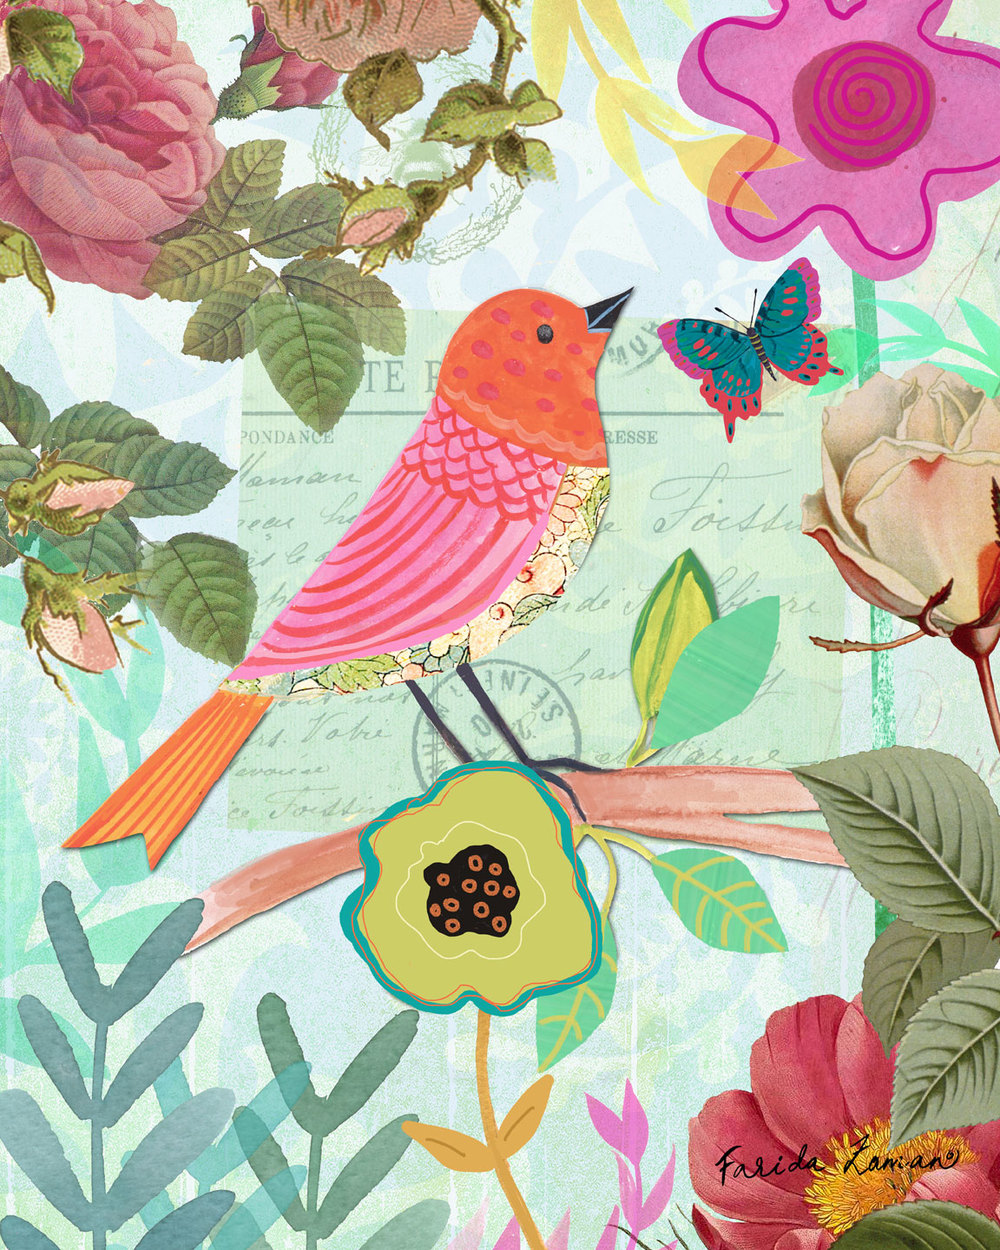 ZAM_EPH_WATERCOLOR_BIRD_PINK_COLLAGE_03.jpg